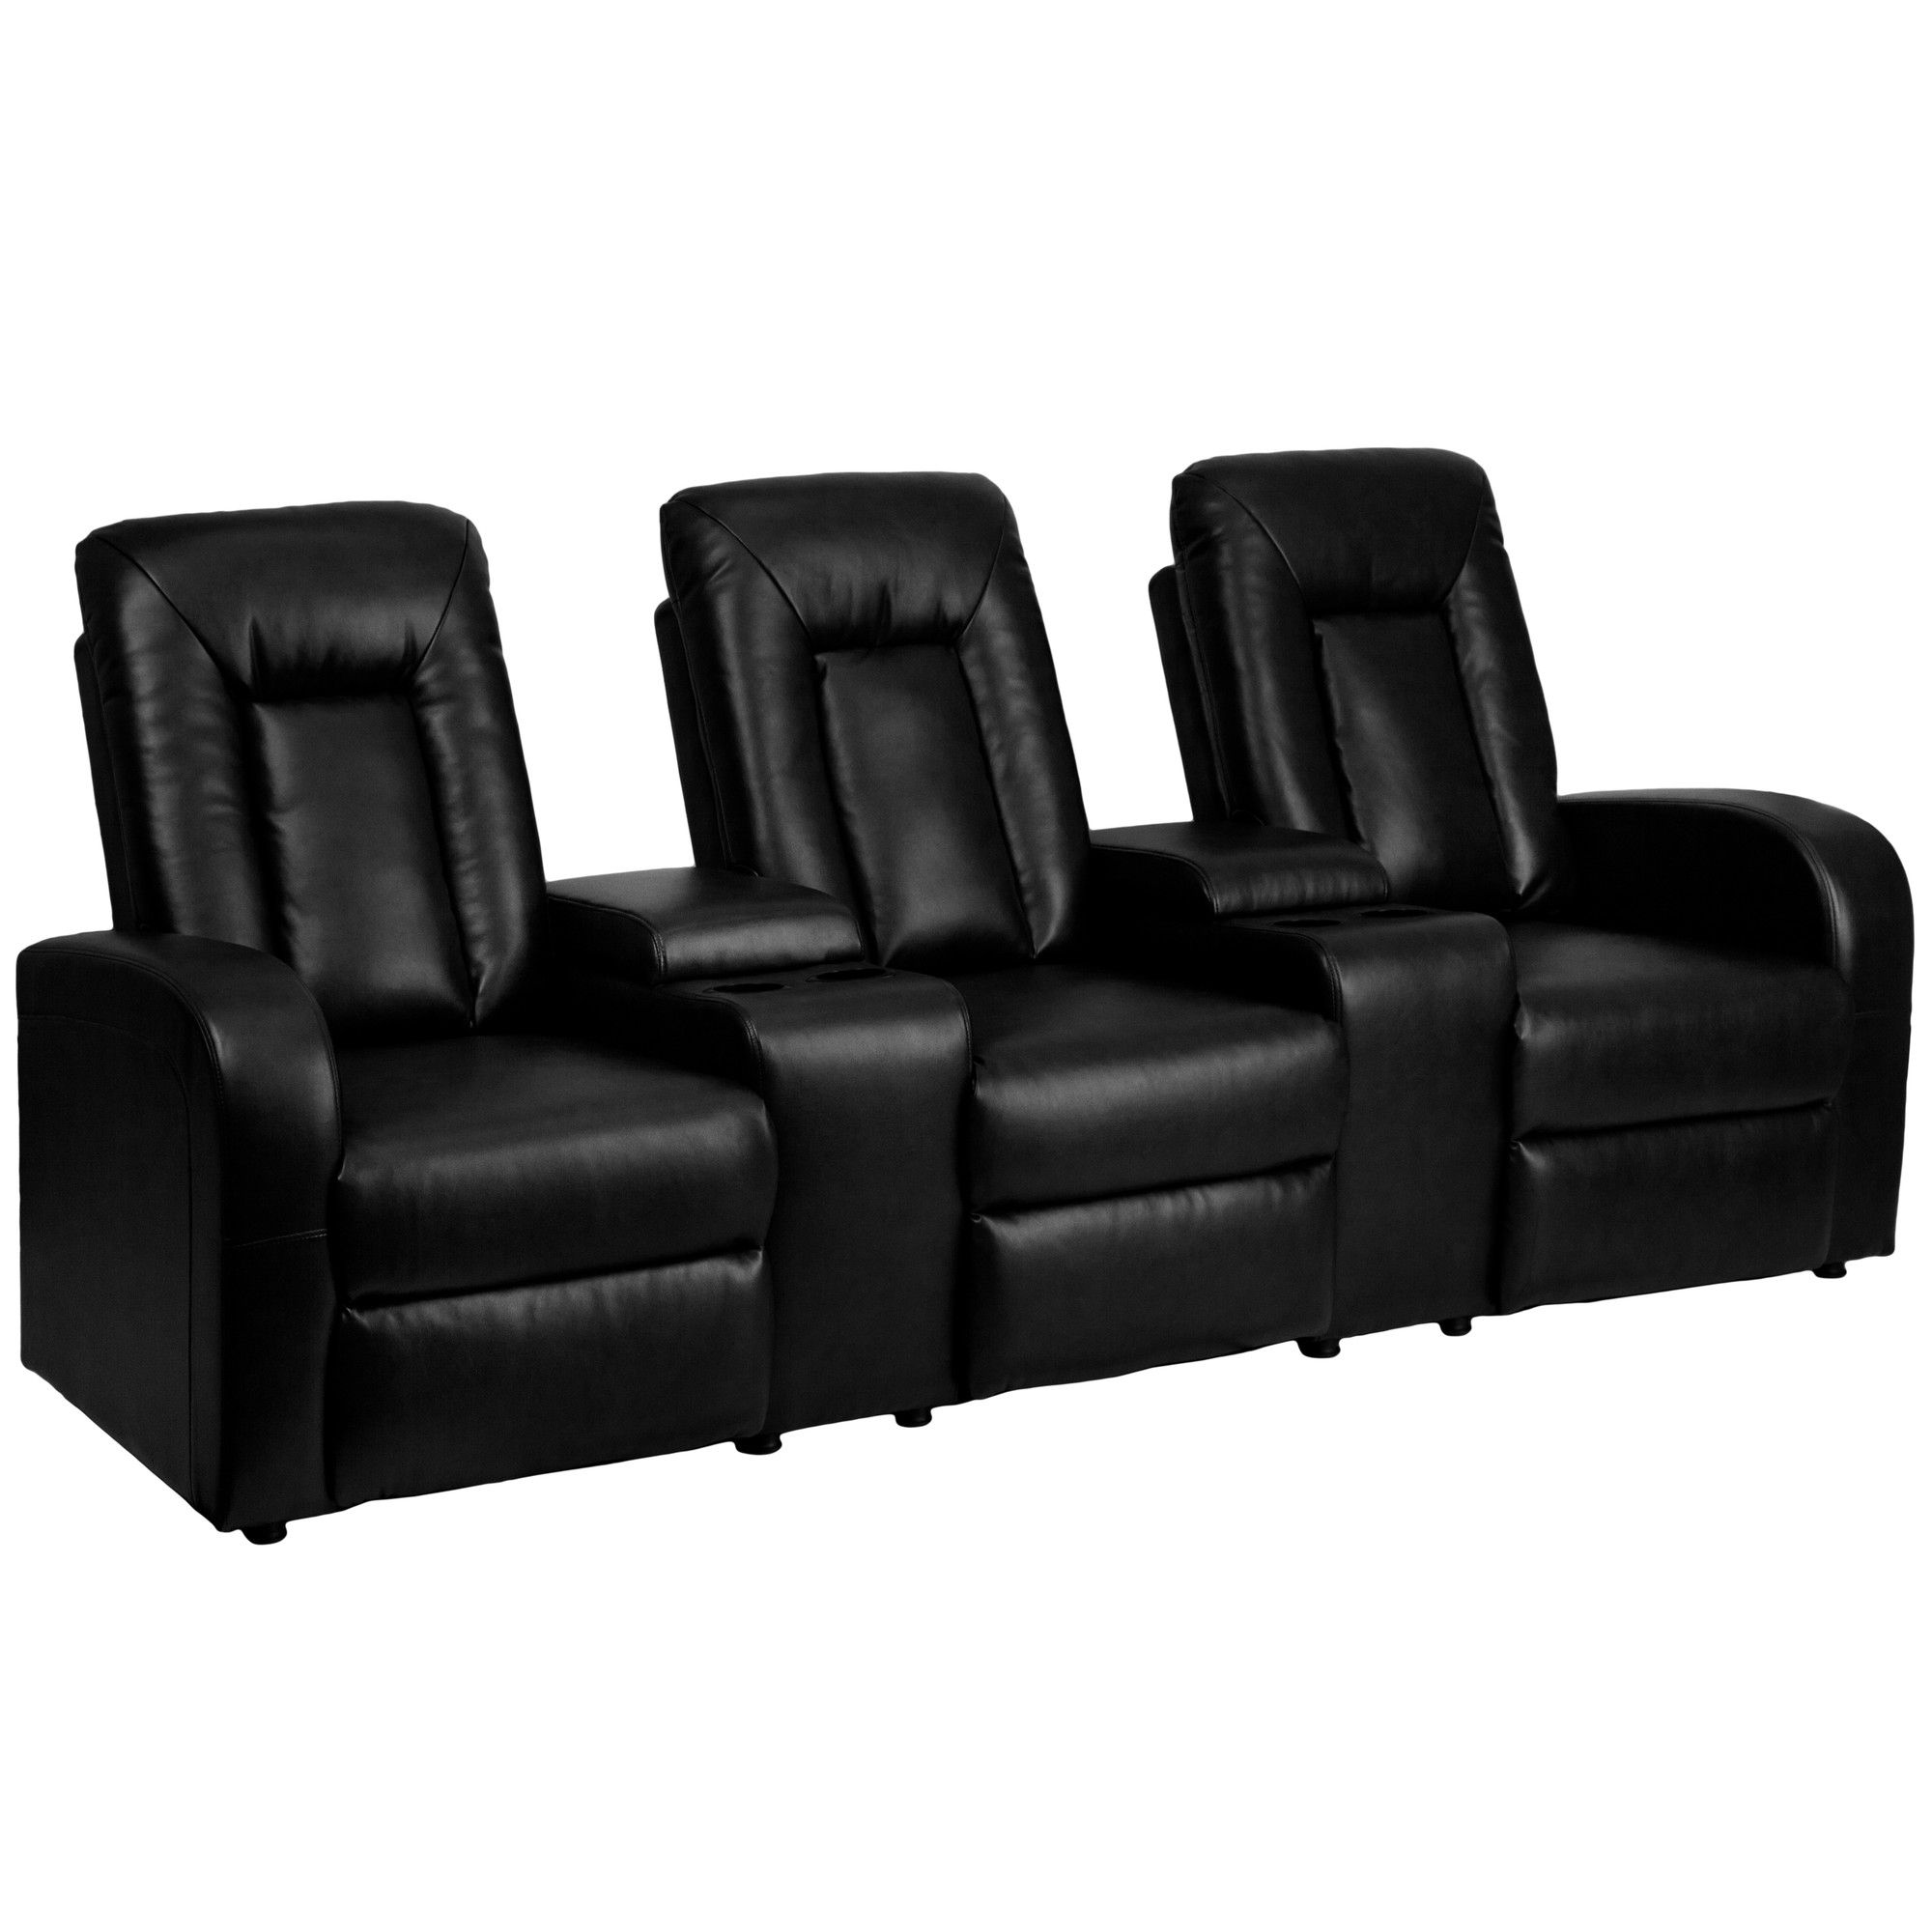 Leather 3 Seat Home Theater Recliner With Storage Console Home